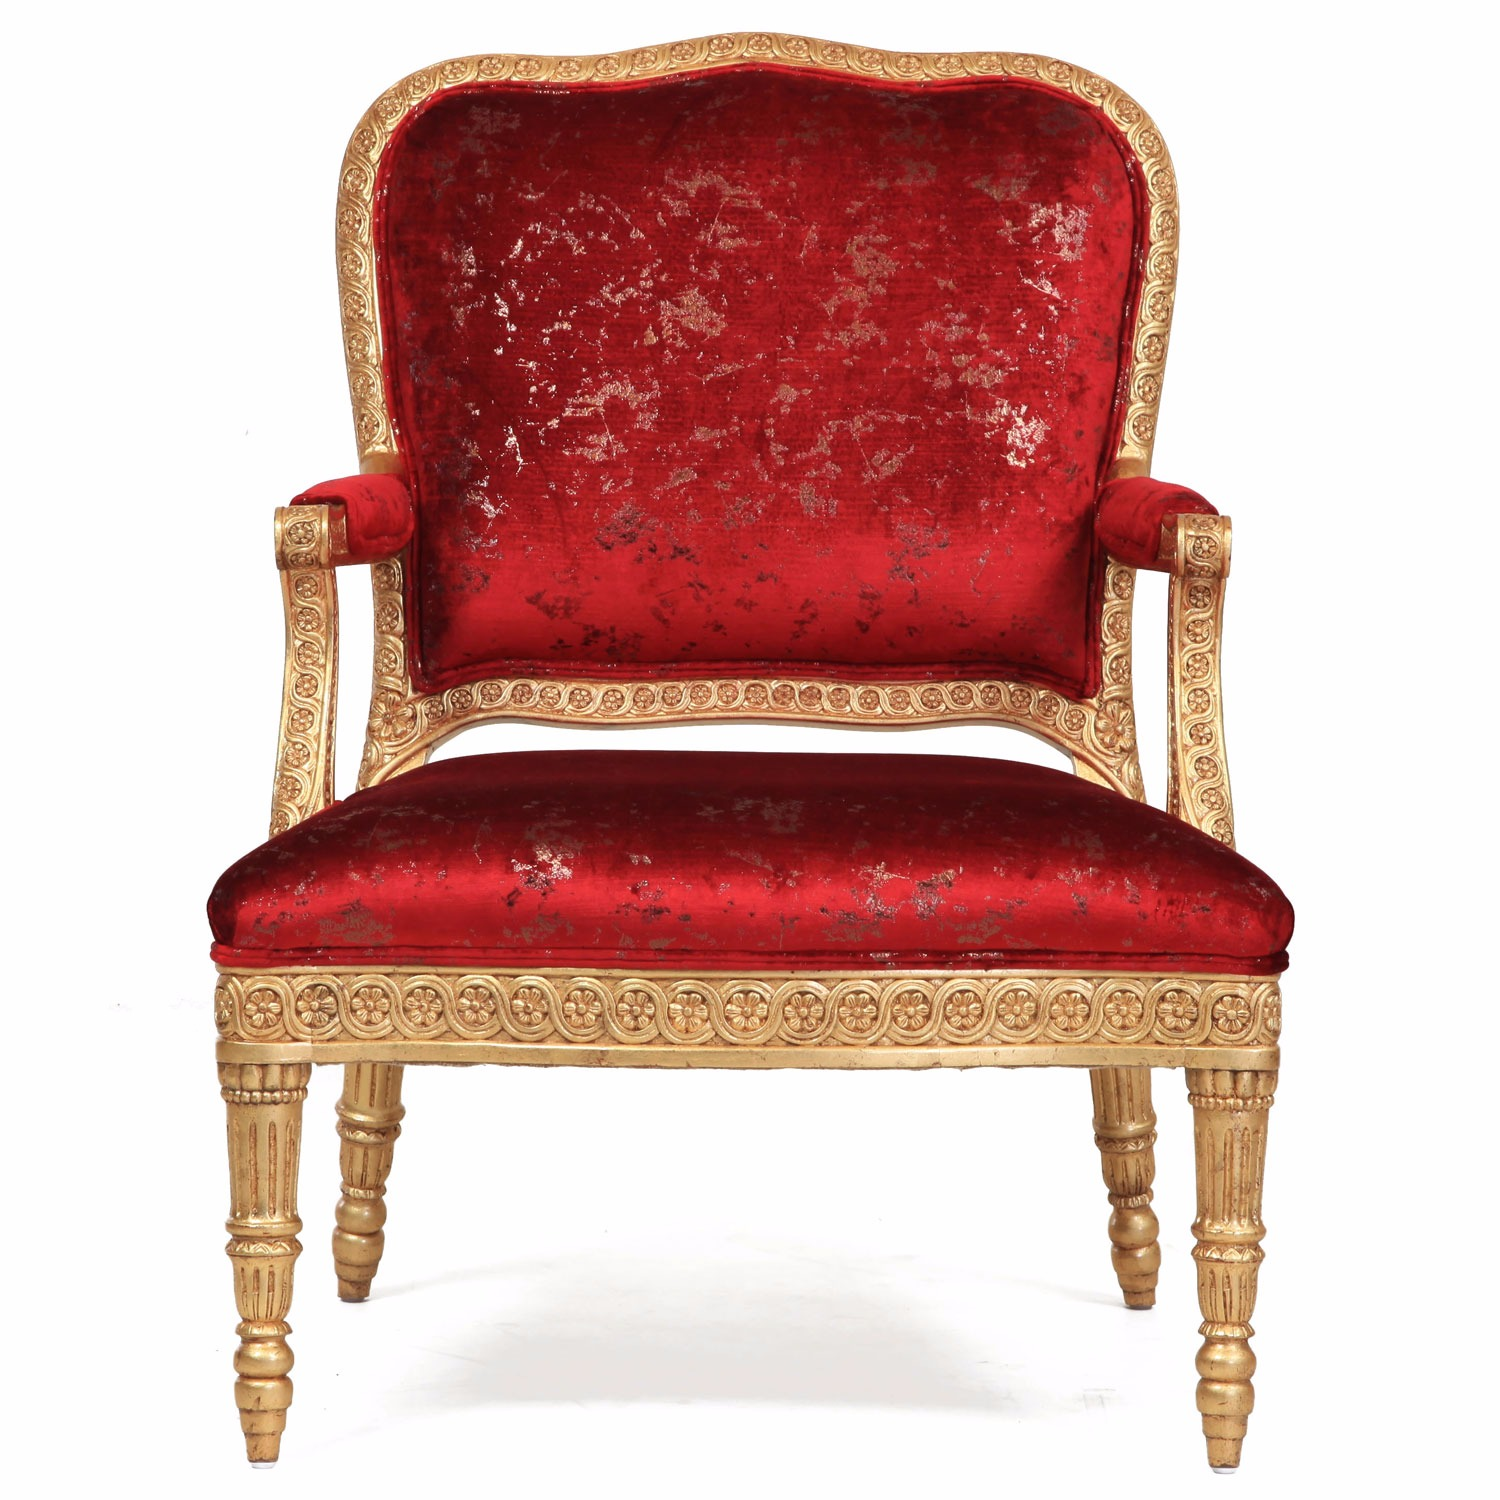 James giltwood chair in crushed red rose velvet